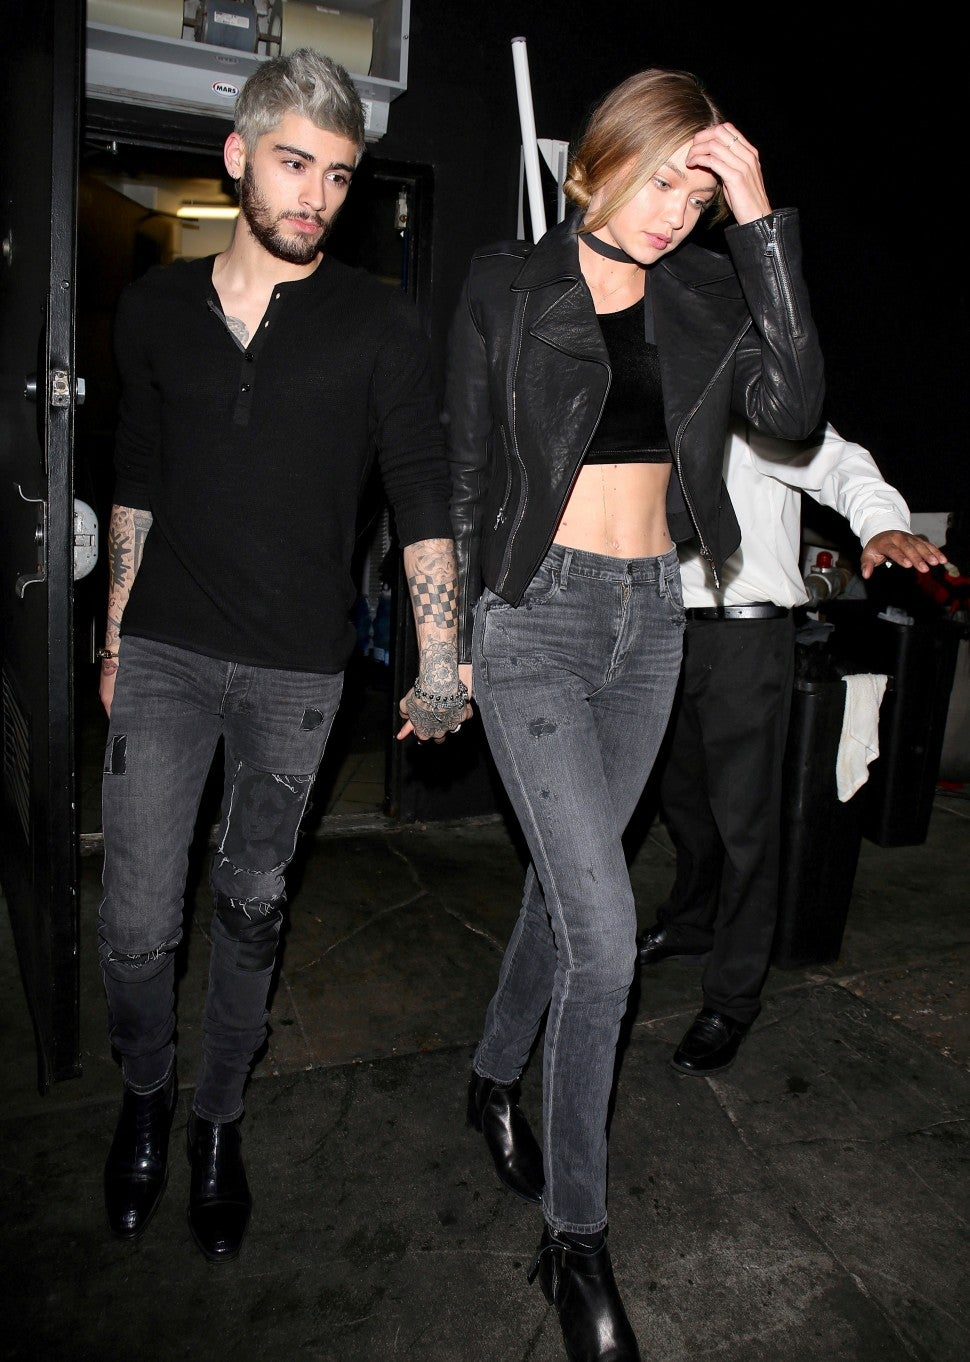 zayn malik and gigi hadid in november 2015